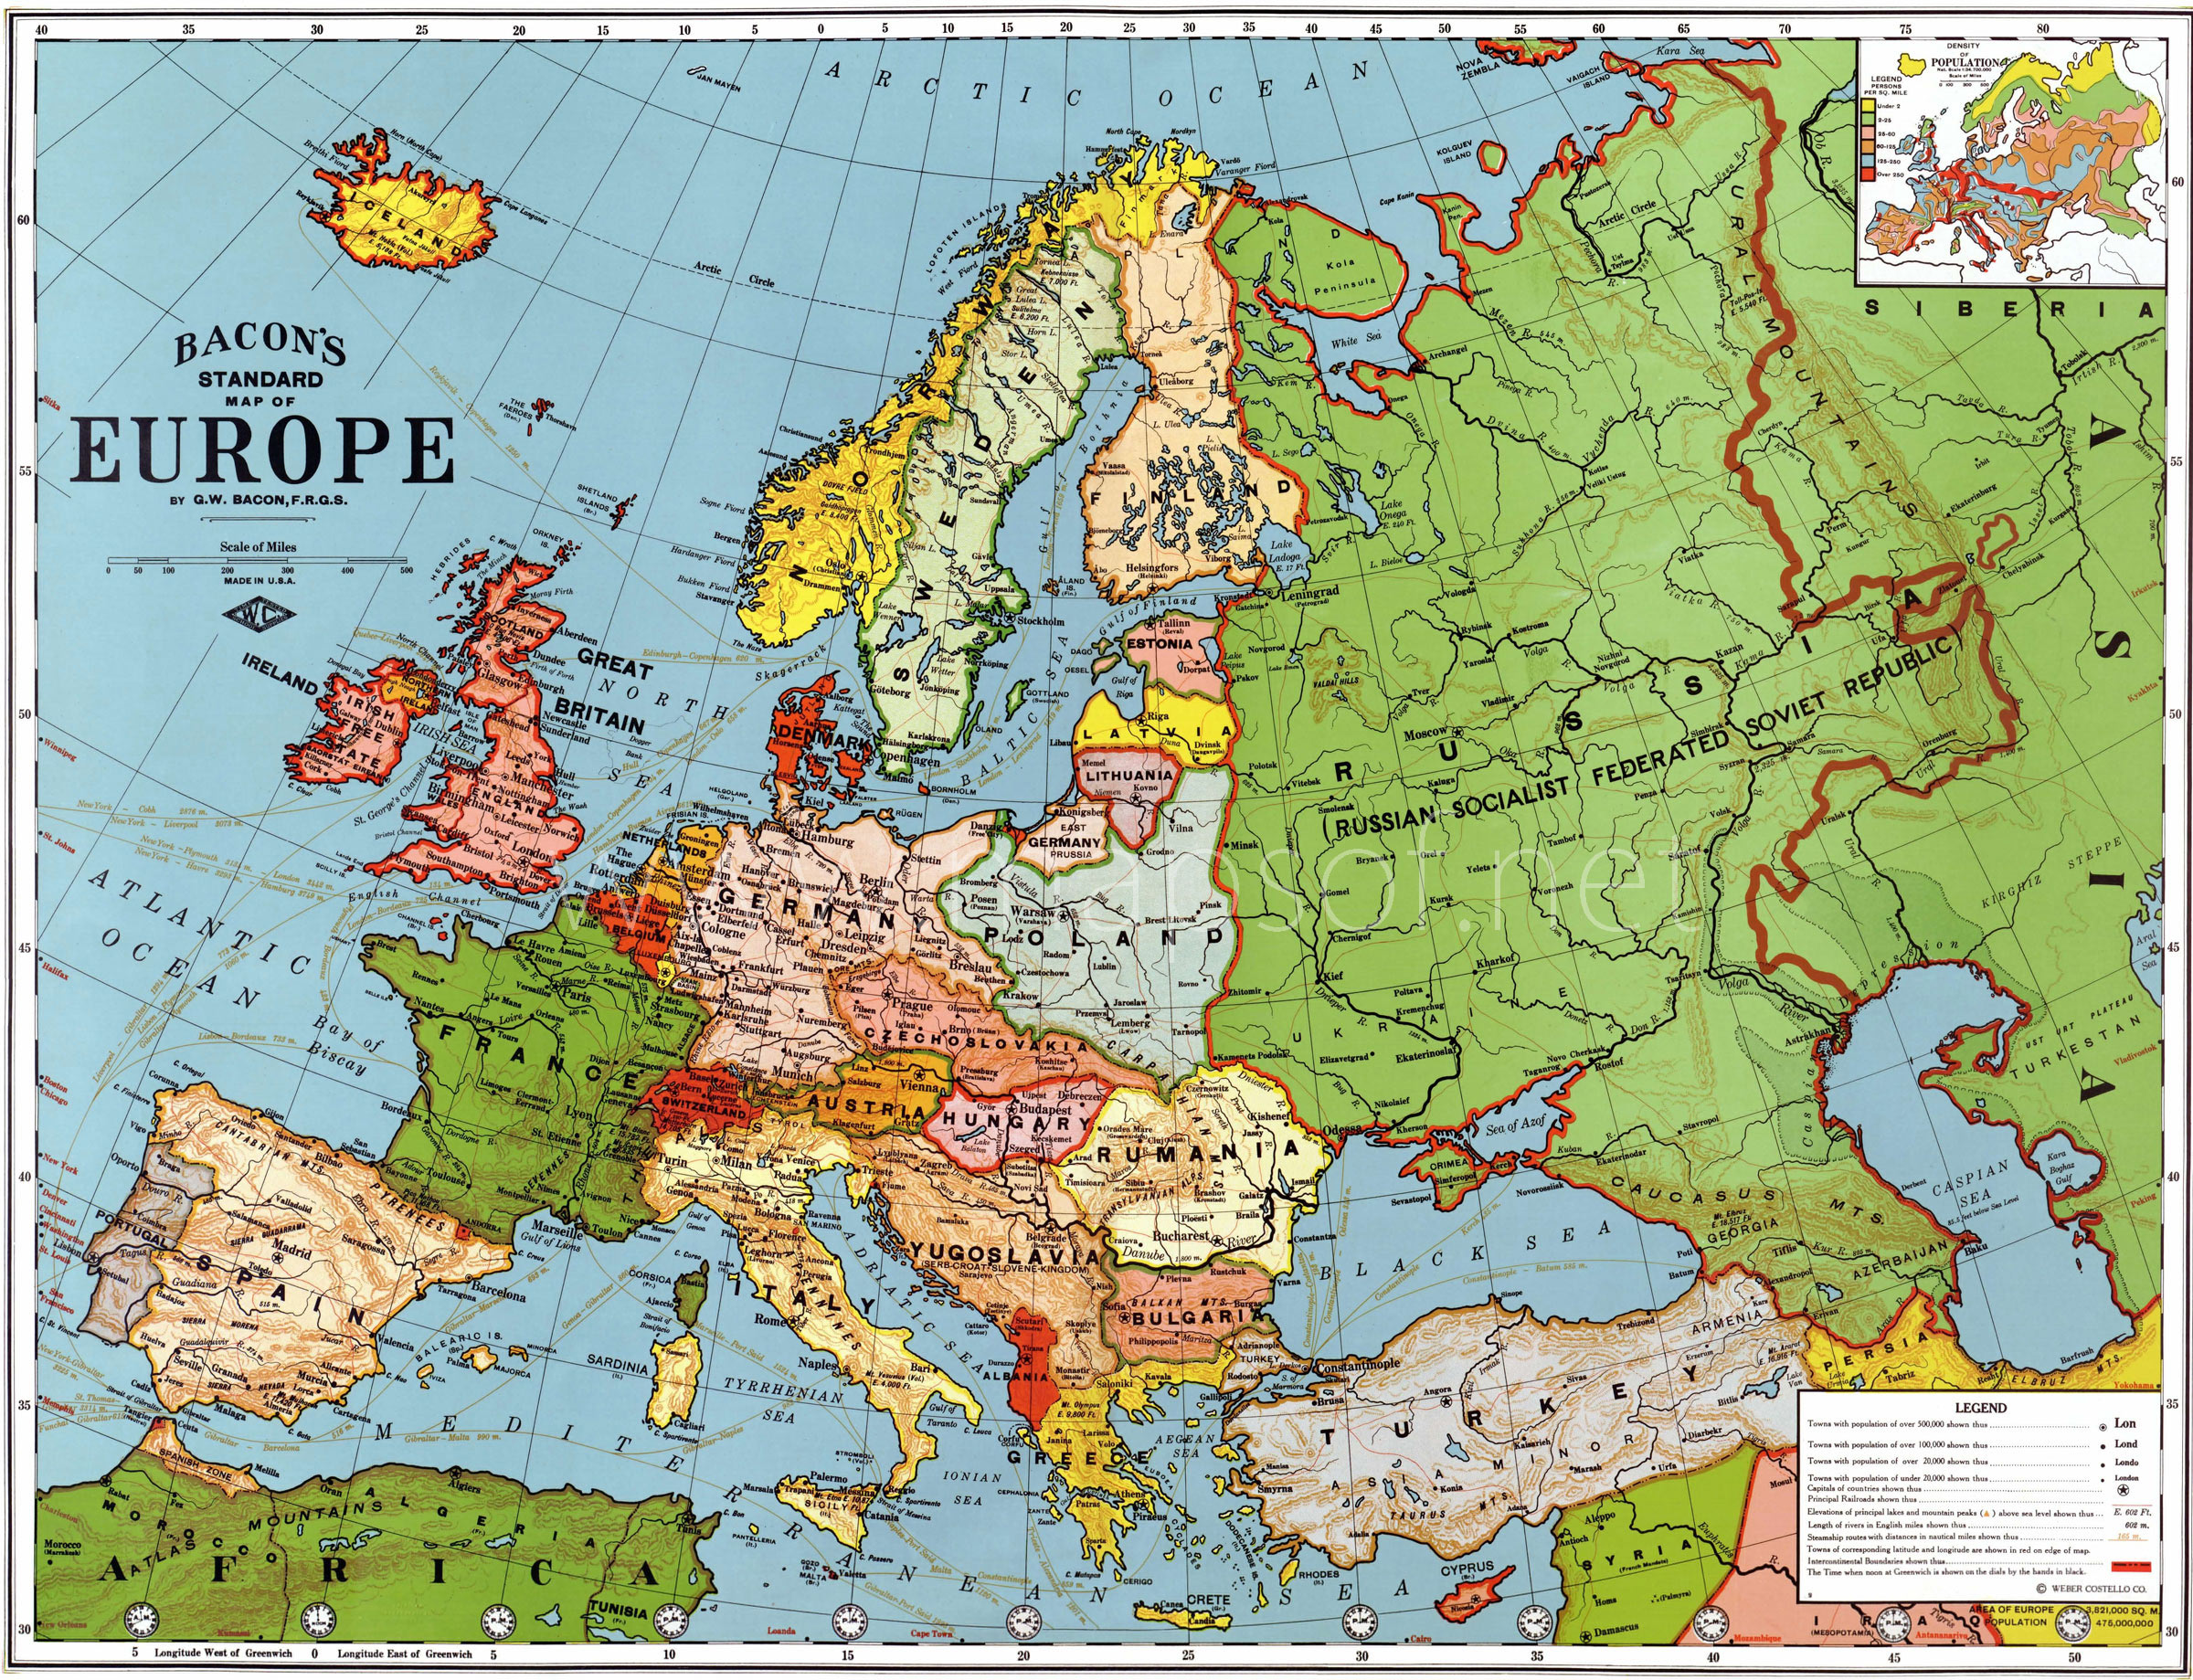 Europe Old Map (1923) • Mapsof.net on map of europe galicia, map of europe kiev, map of europe naples, map of europe wittenberg, map of europe germany, map of europe ireland, map of europe helsinki, map of europe athens, map of europe verdun, map of europe malta, map of europe belgrade, map of europe suez canal, map of europe heidelberg, map of europe alsace, map of europe reykjavik, map of europe york, map of europe silesia, map of europe luxembourg, map of europe zagreb, map of europe genoa,